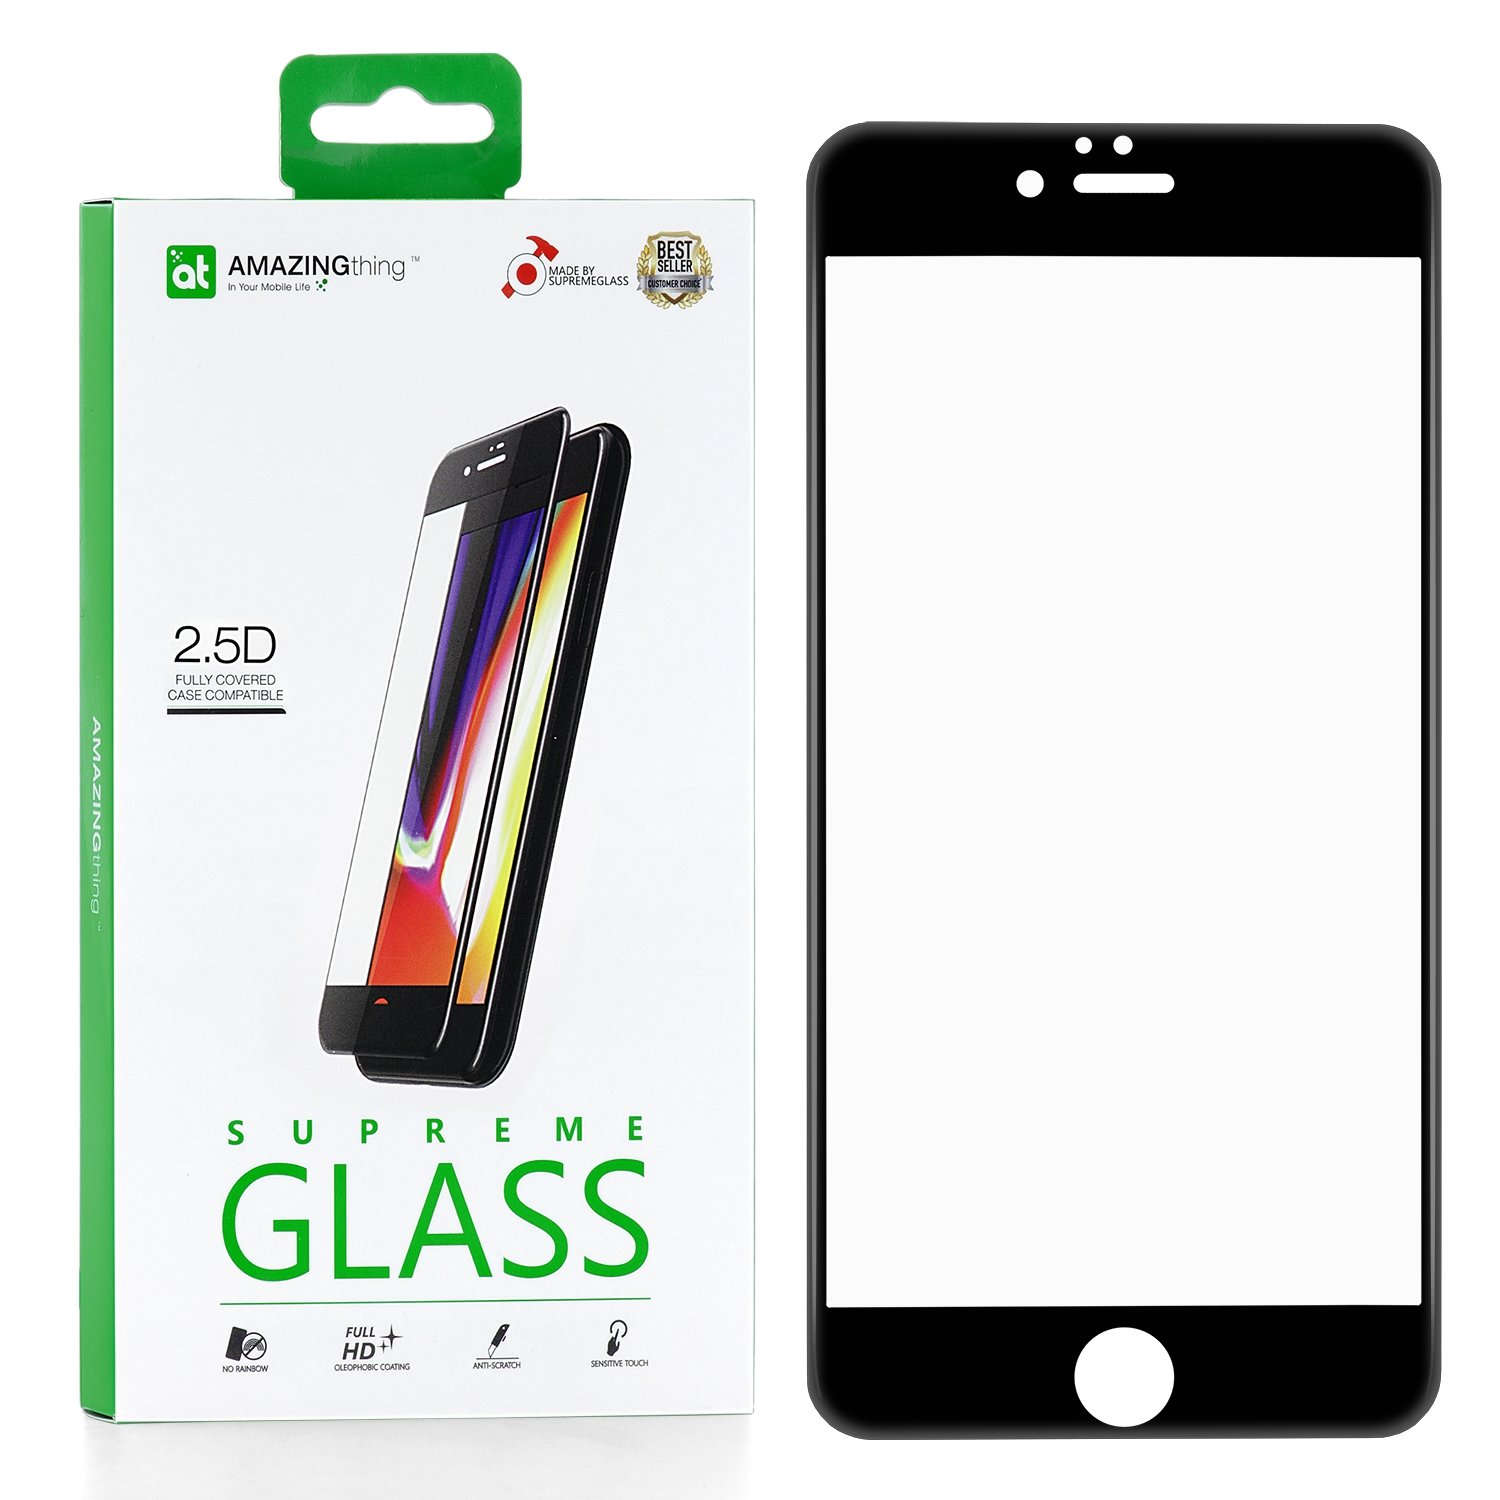 Защитное стекло AMAZINGthing SupremeGlass Full Glue Black 0.33mm для Apple iPhone 6/6S